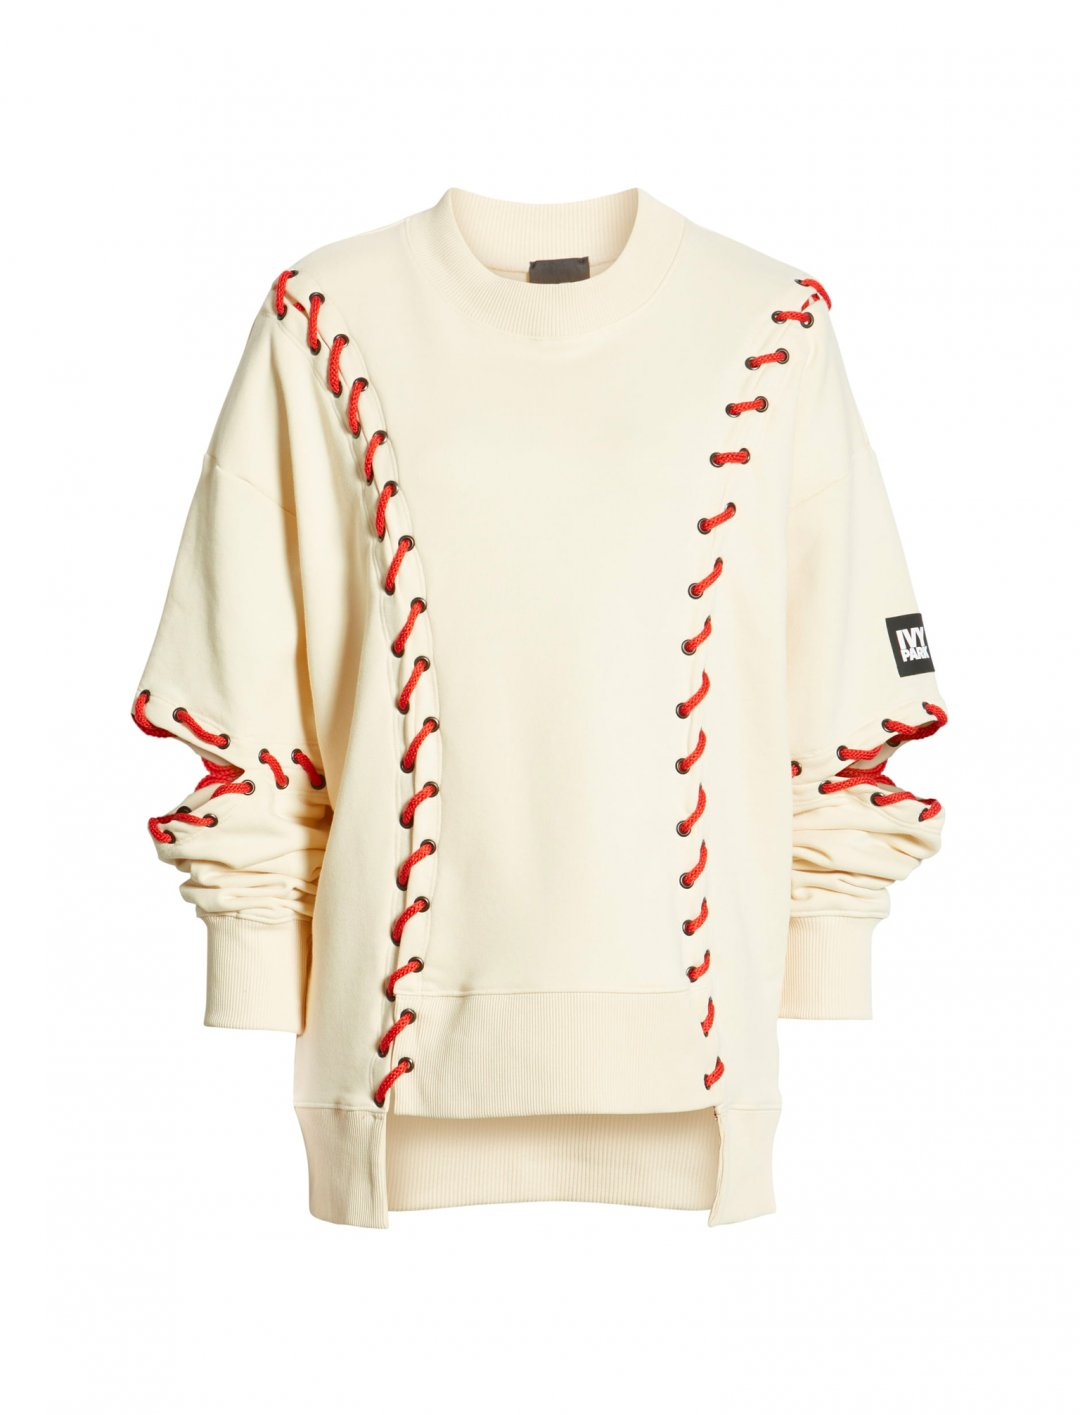 "Baseball Stitch Sweatshirt {""id"":5,""product_section_id"":1,""name"":""Clothing"",""order"":5} Ivy Park"